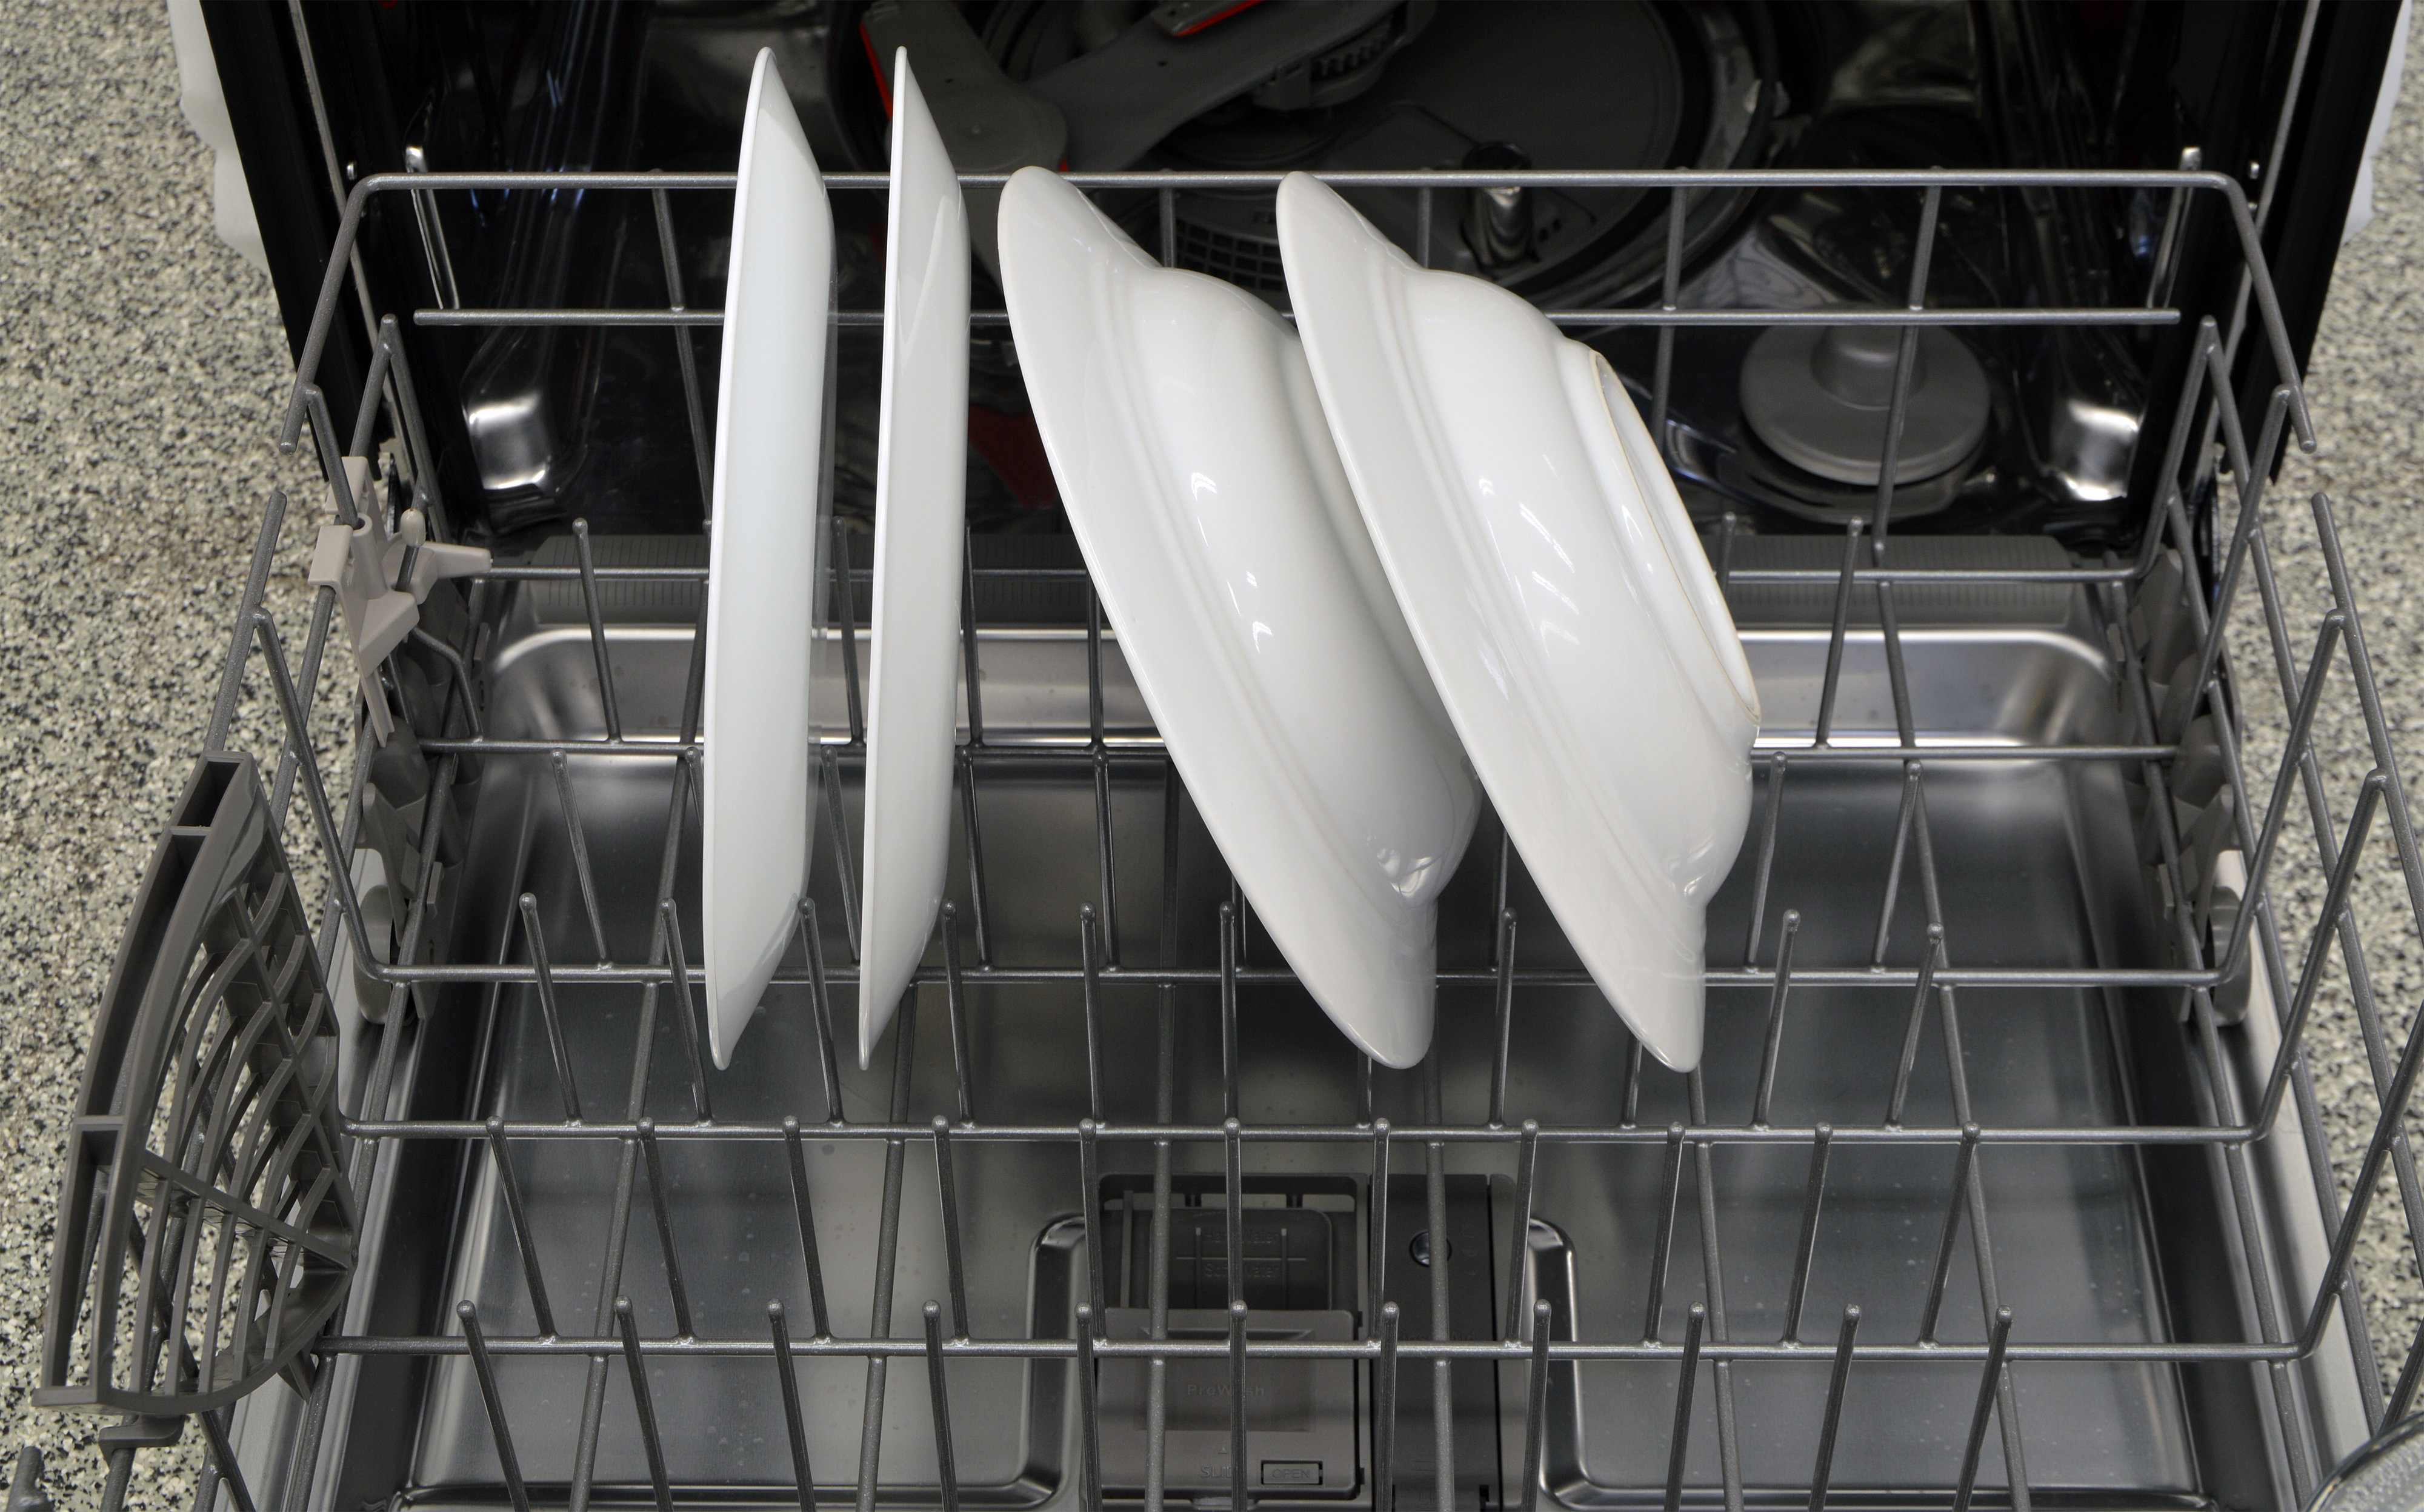 Thick and thin plates resting in the bottom rack